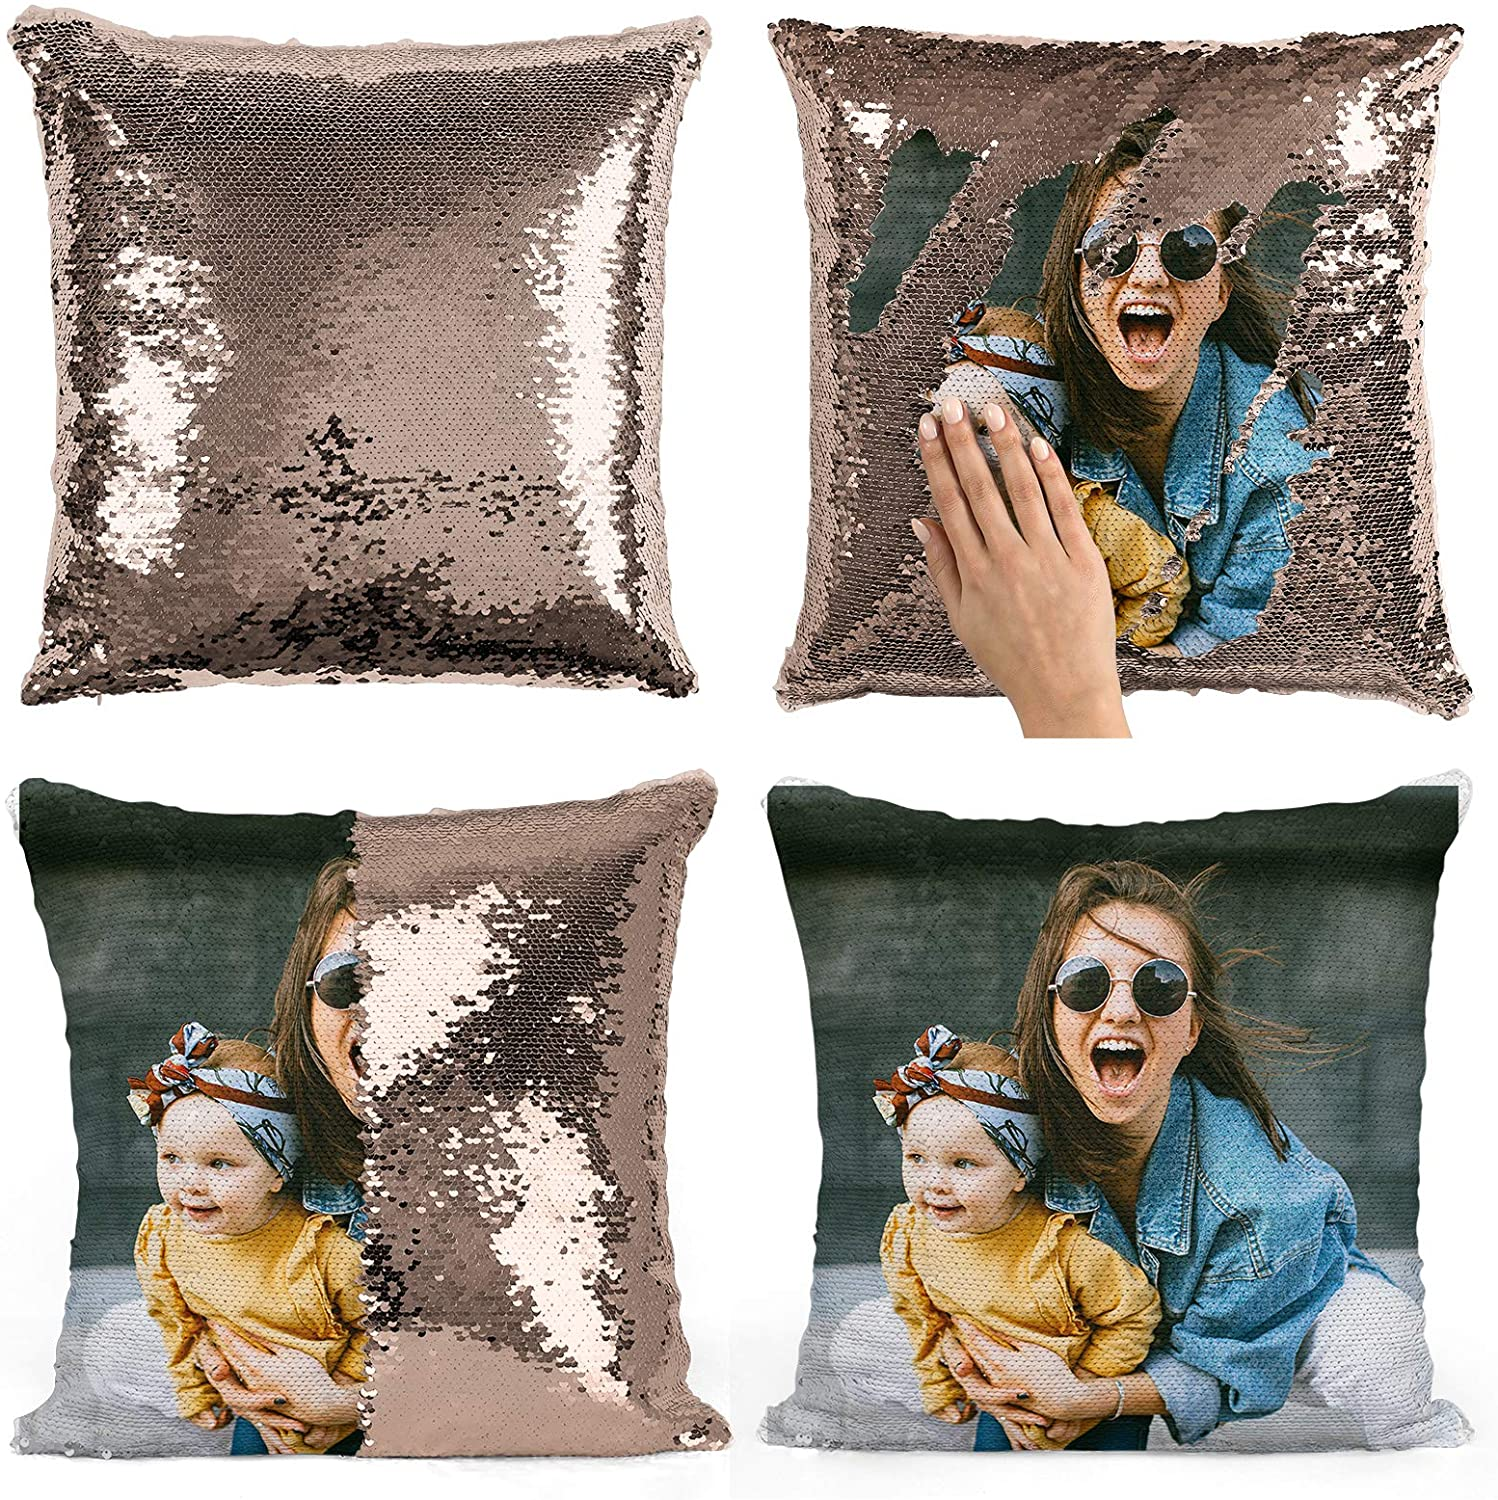 DREAM KARIN Custom Photo Sequin Pillow Personalized Mermaid Sequin Pillow Gift for Her Gift for Mom Custom Pillow Magic Sequin Pillow Personalized Gifts (Black/White, No Insert Just Case)